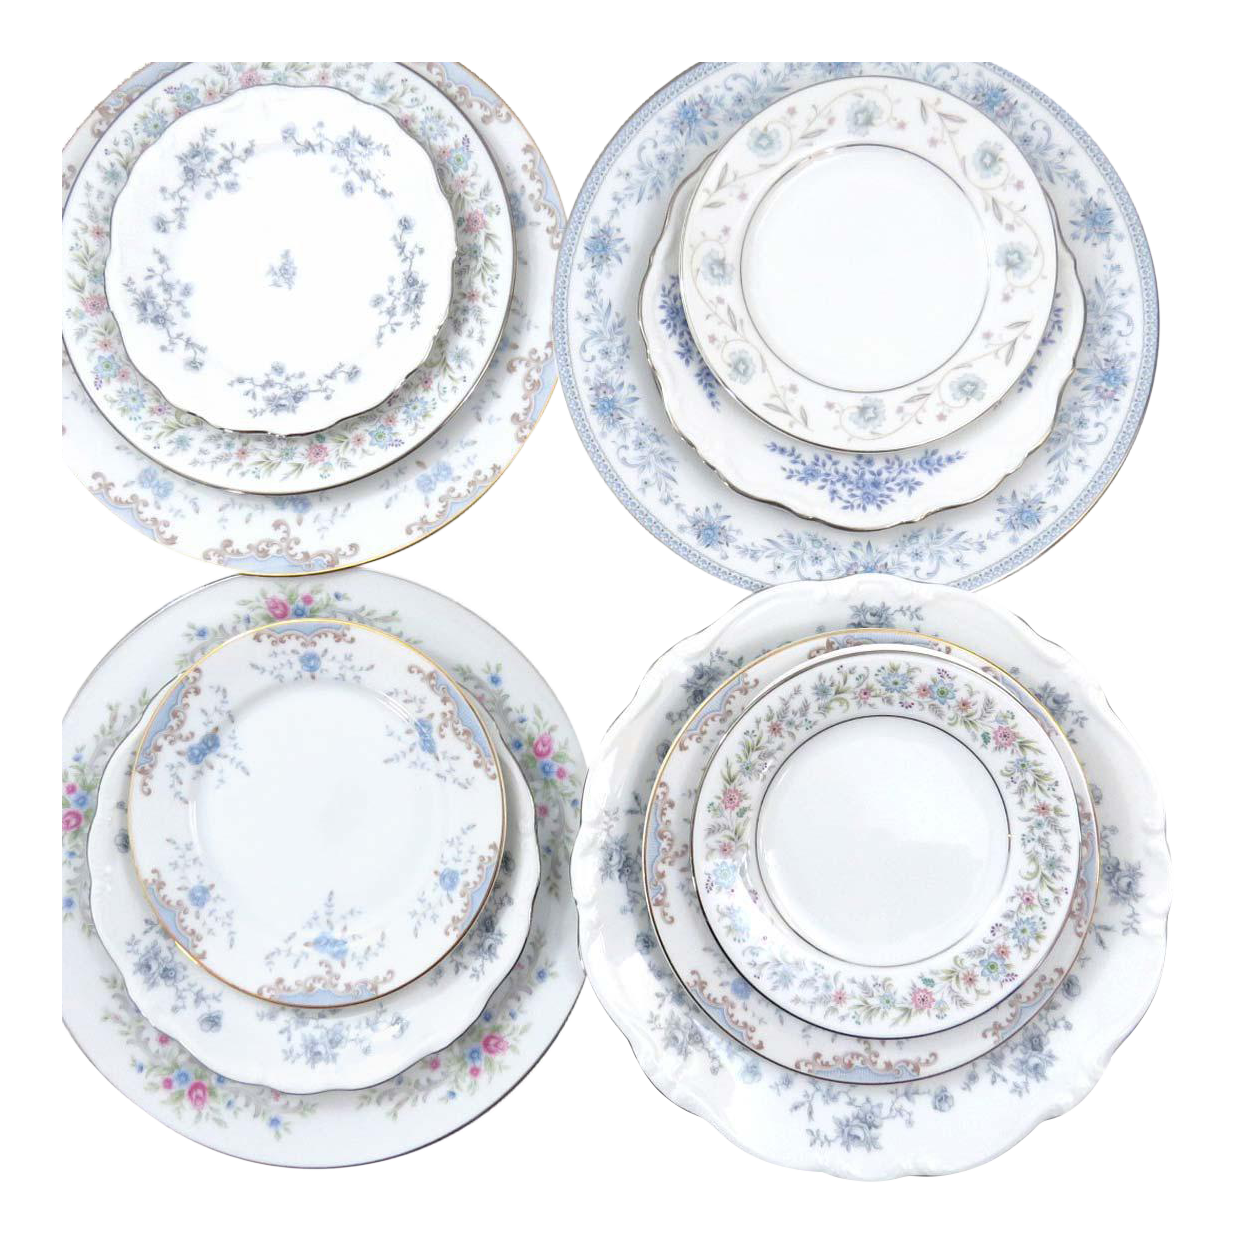 Vintage Mismatched Fine China Dinnerware Set - Service for 4  sc 1 st  Chairish : vintage china dinnerware sets - pezcame.com